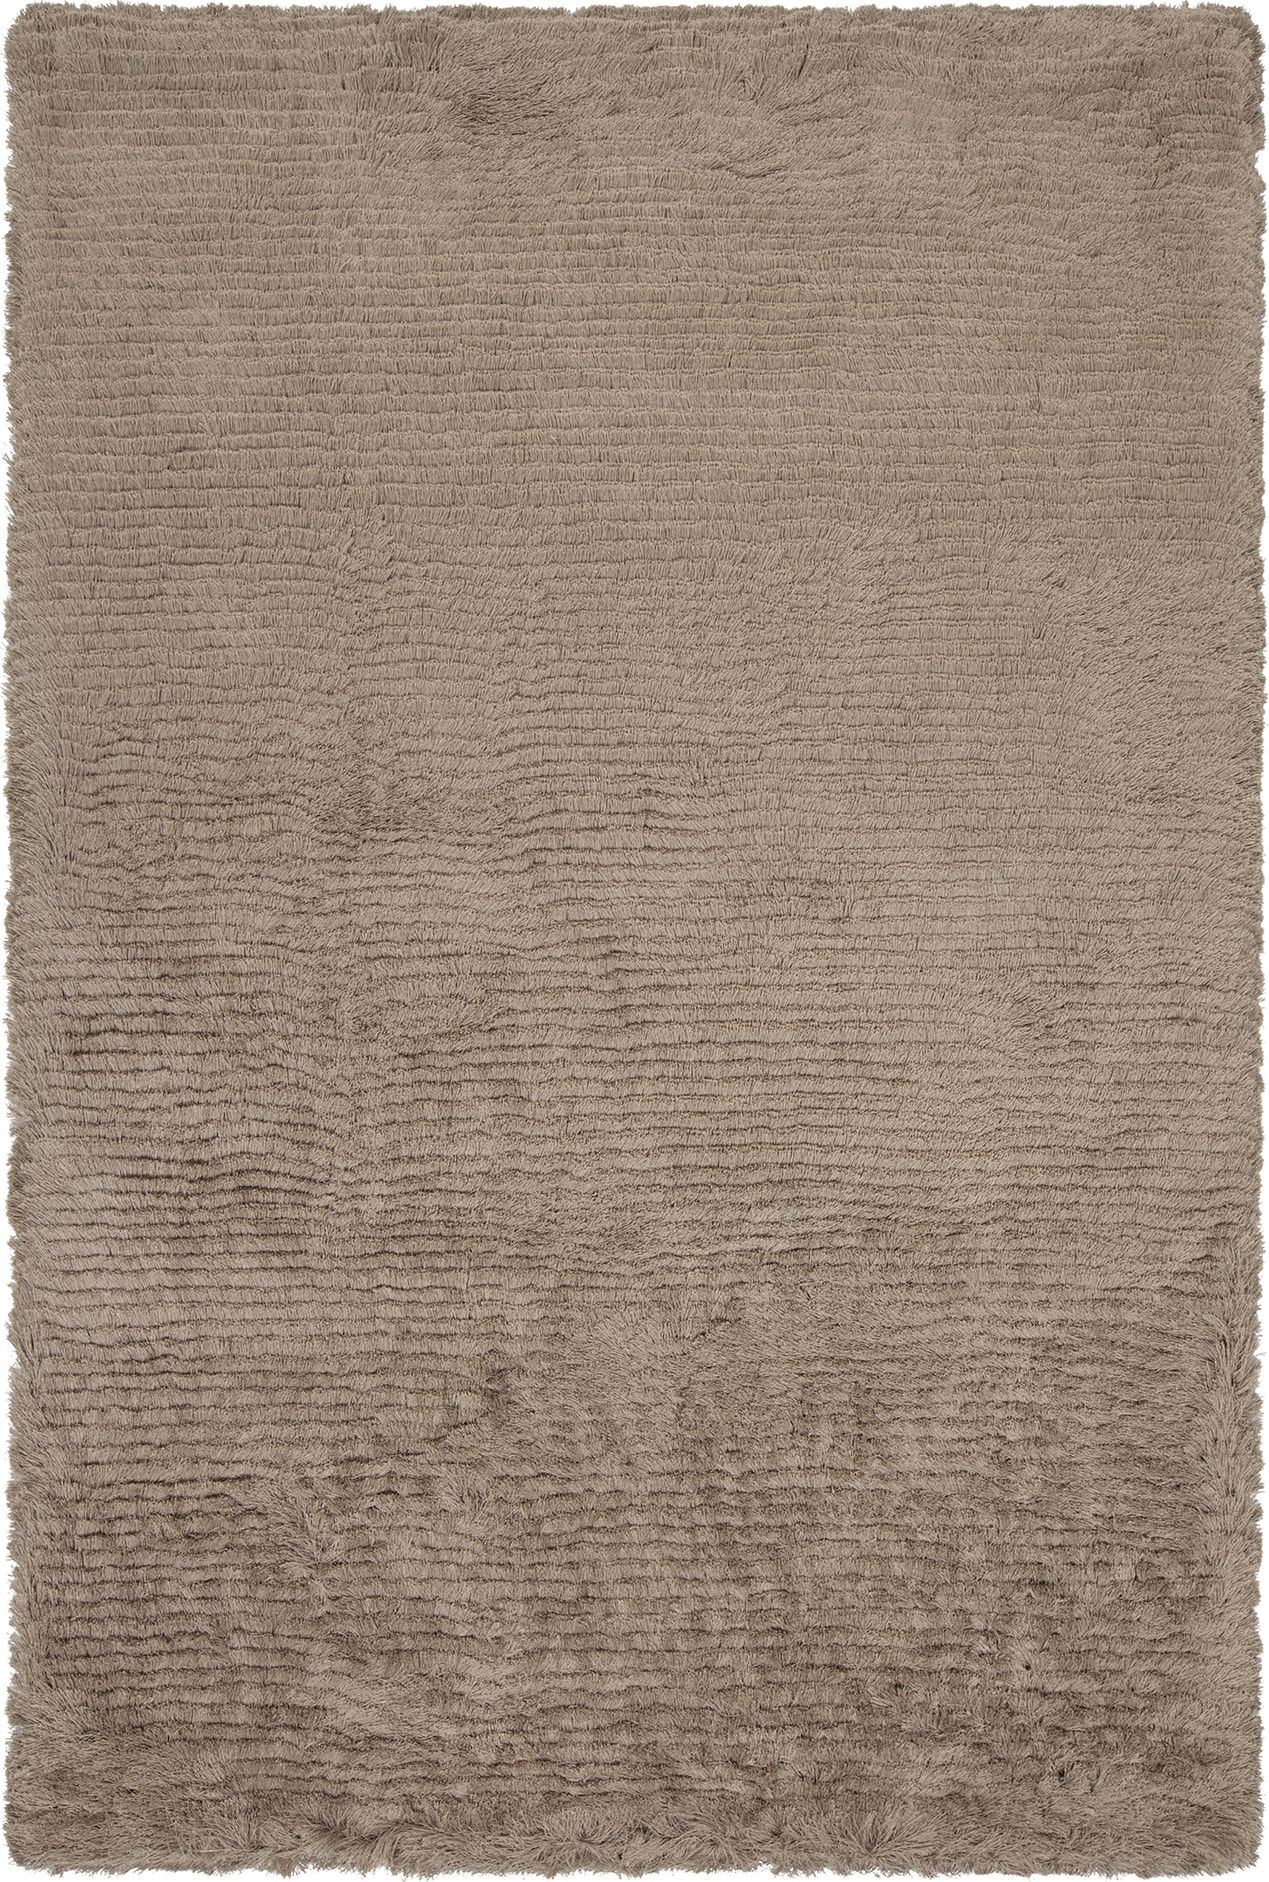 Eli 33101 Color Brown Size 7 9 X 10 6 Area Rugs Modern